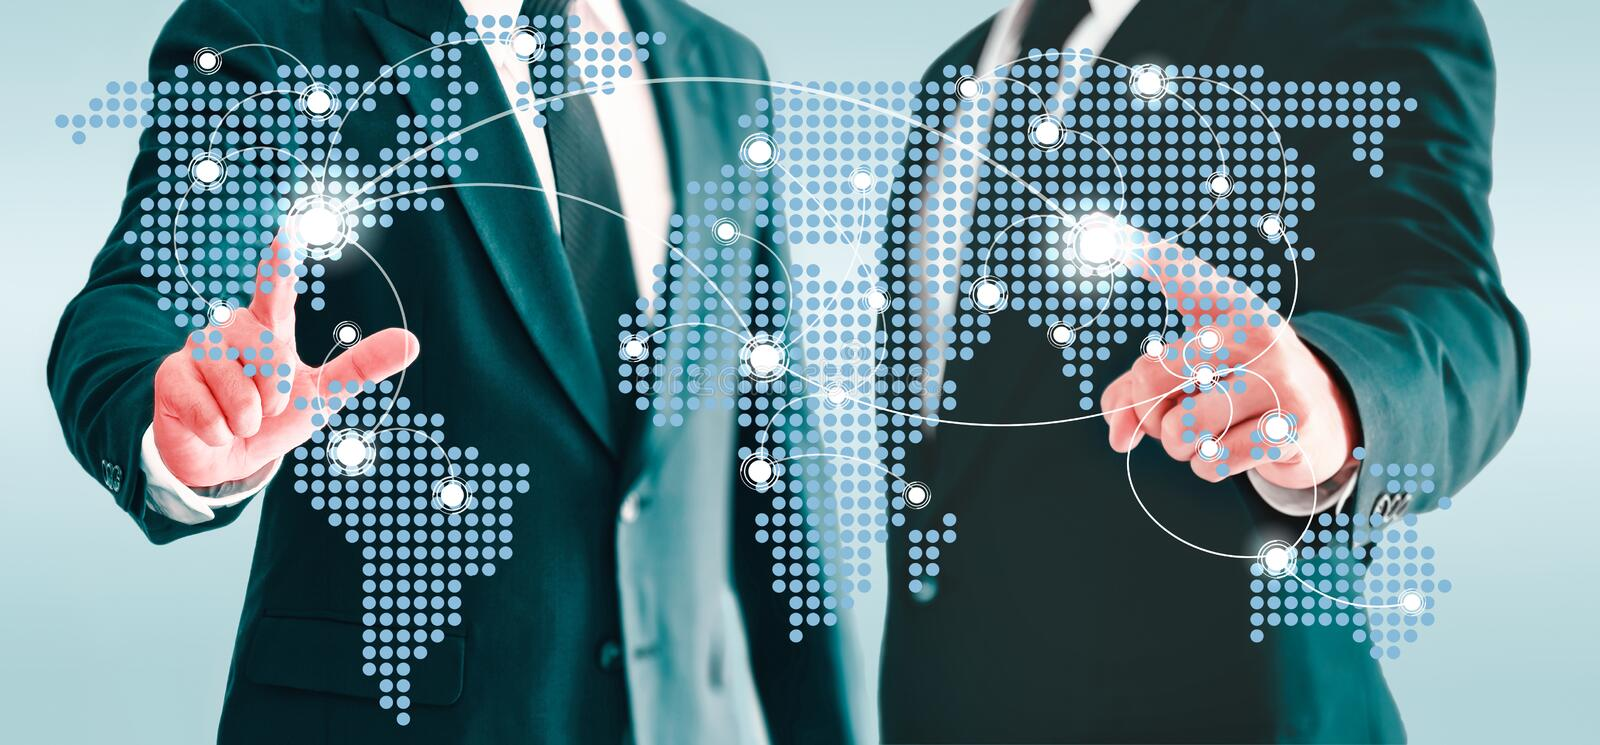 Two businessmen touching world map virtual button. Concepts of information and business contacts interconnected world.  stock photo